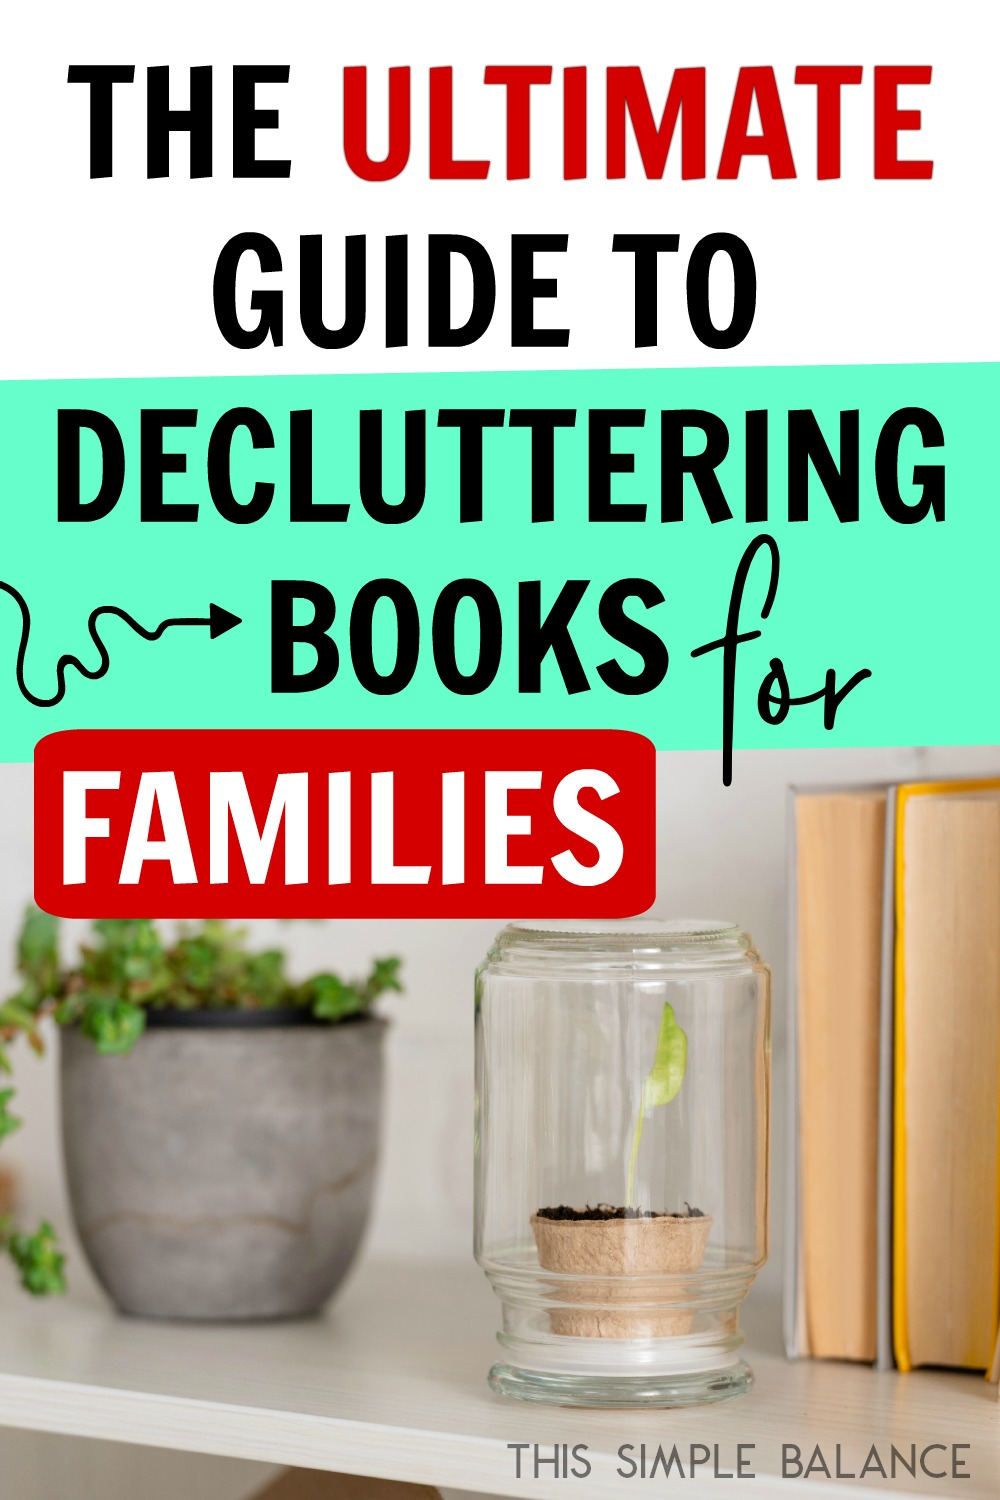 Decluttering Books: Tips and Ideas for families,( You can declutter books and still raise readers)